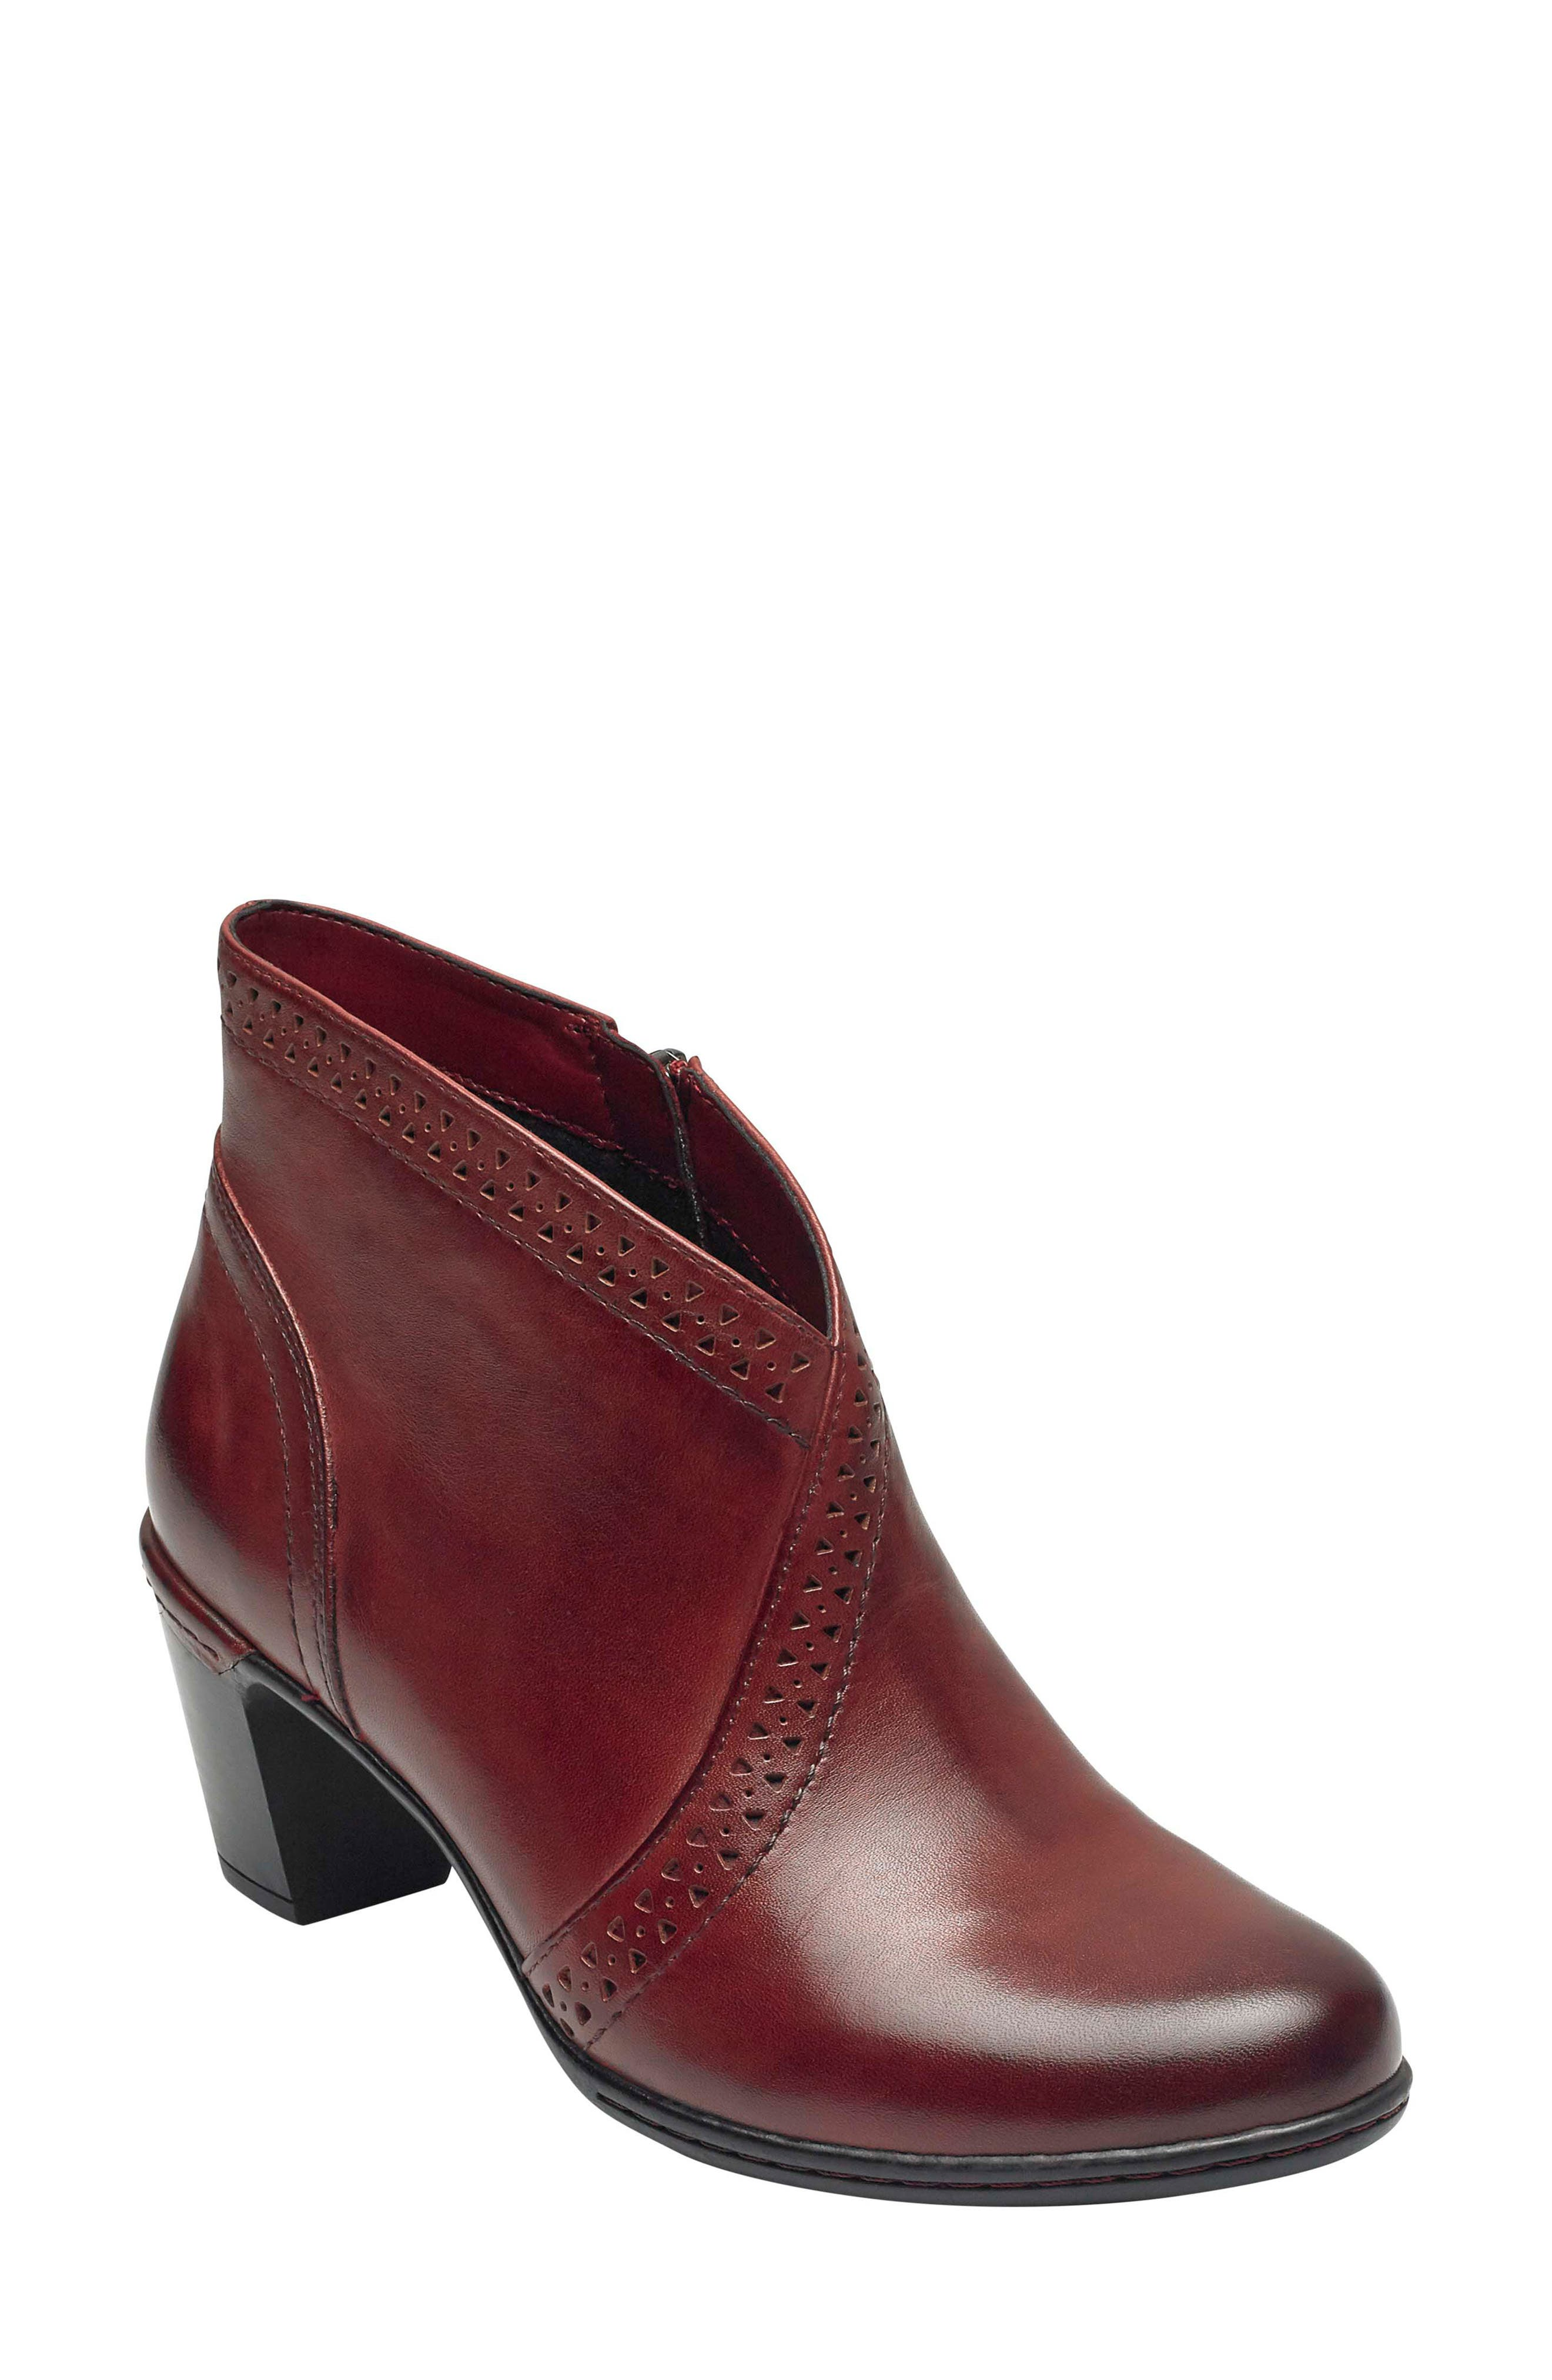 Rockport Cobb Hill Rashel Bootie, Red